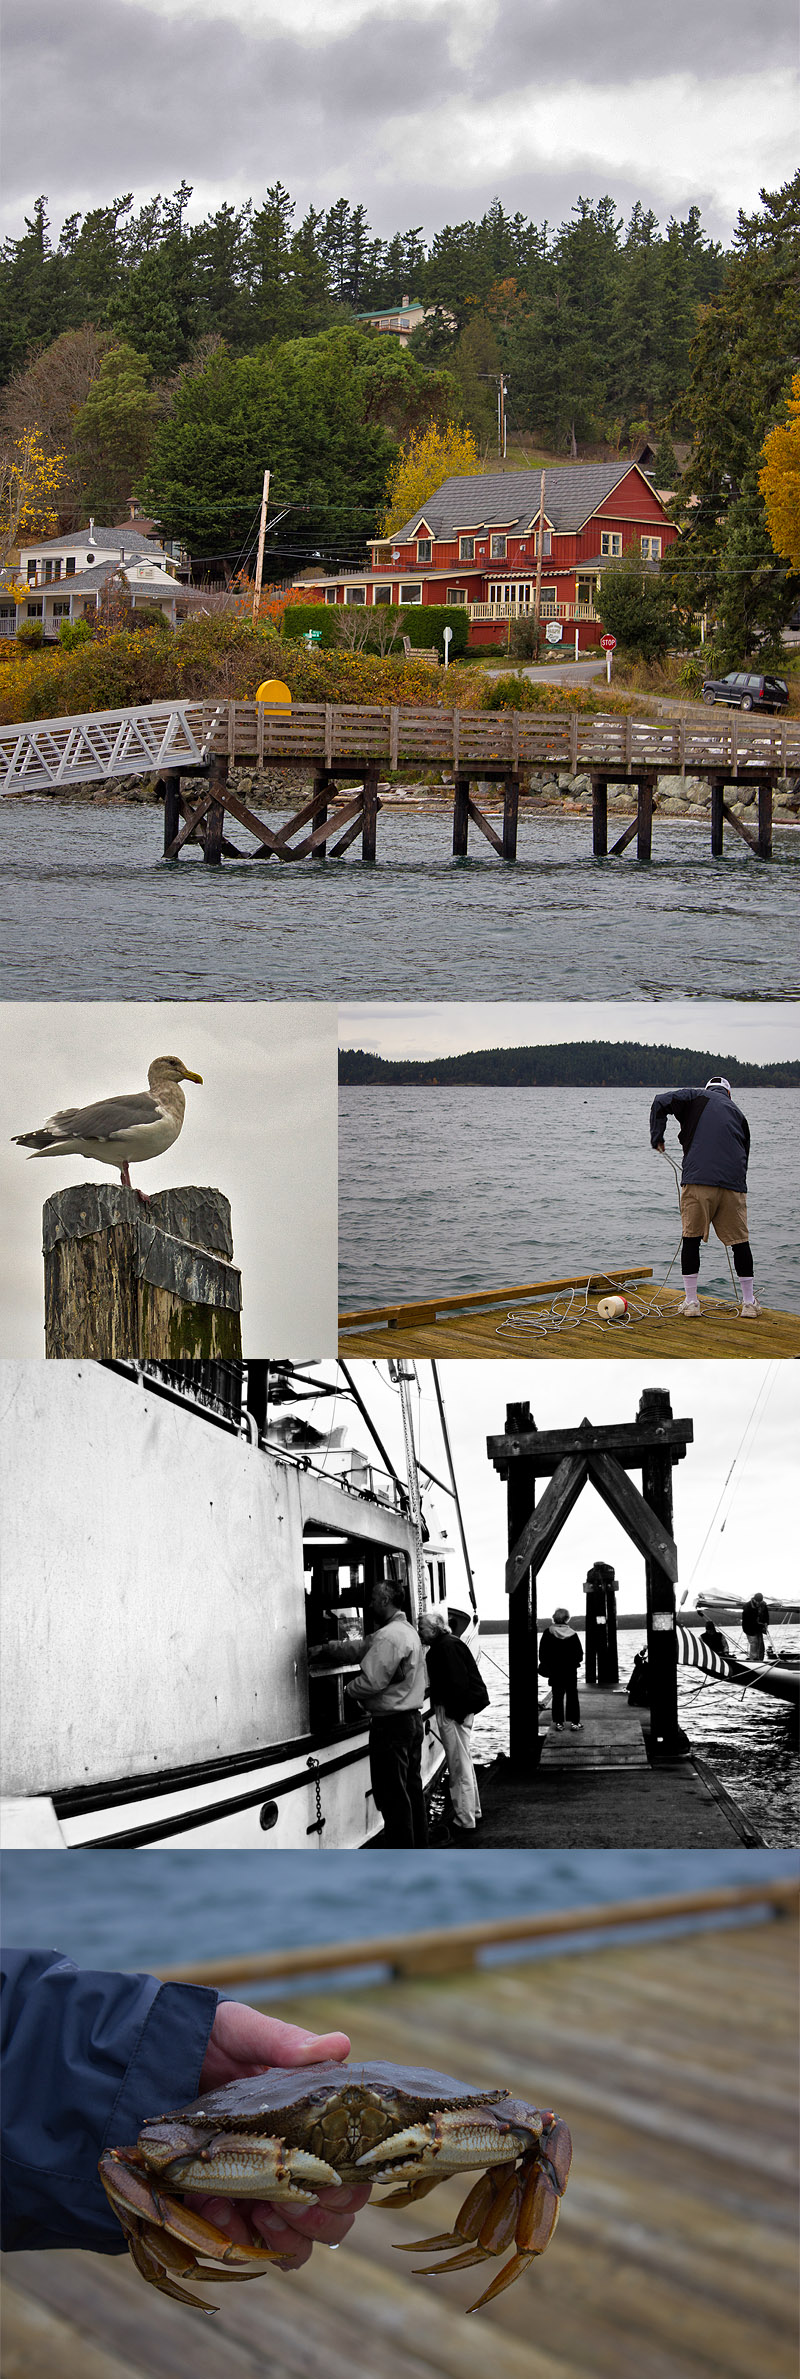 Dock Crabbing on Orcas Island